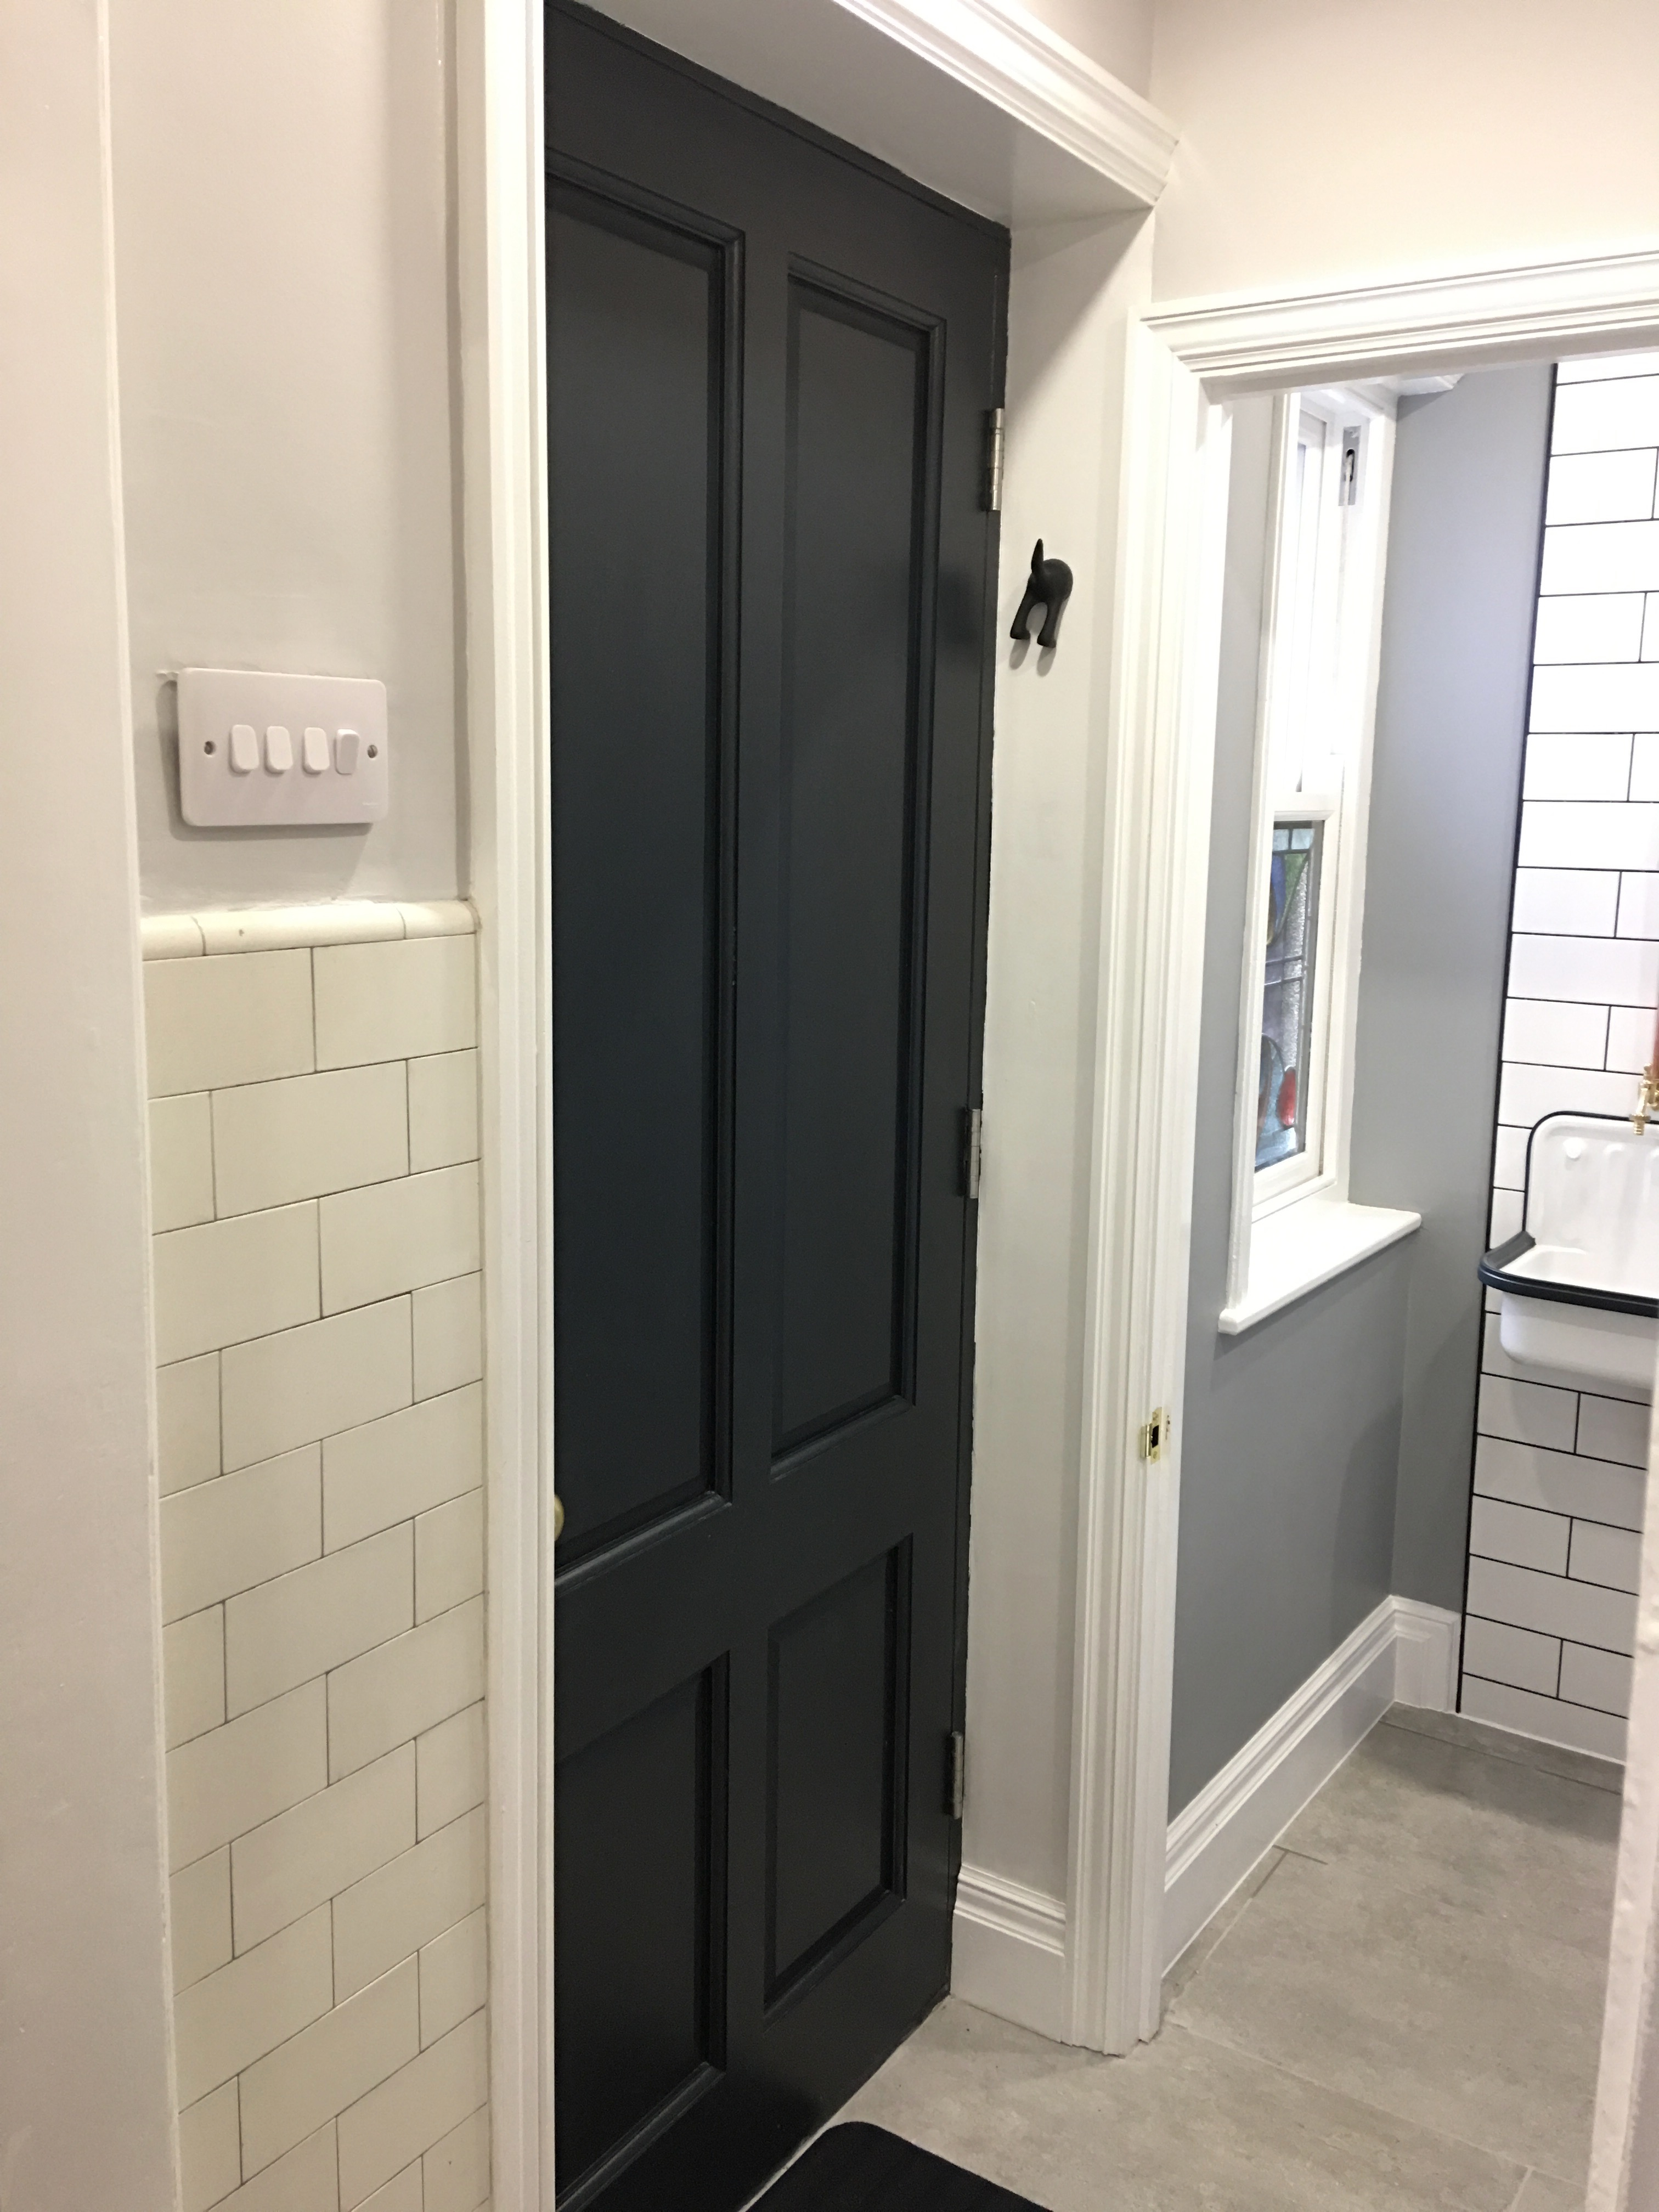 Back door and period lining